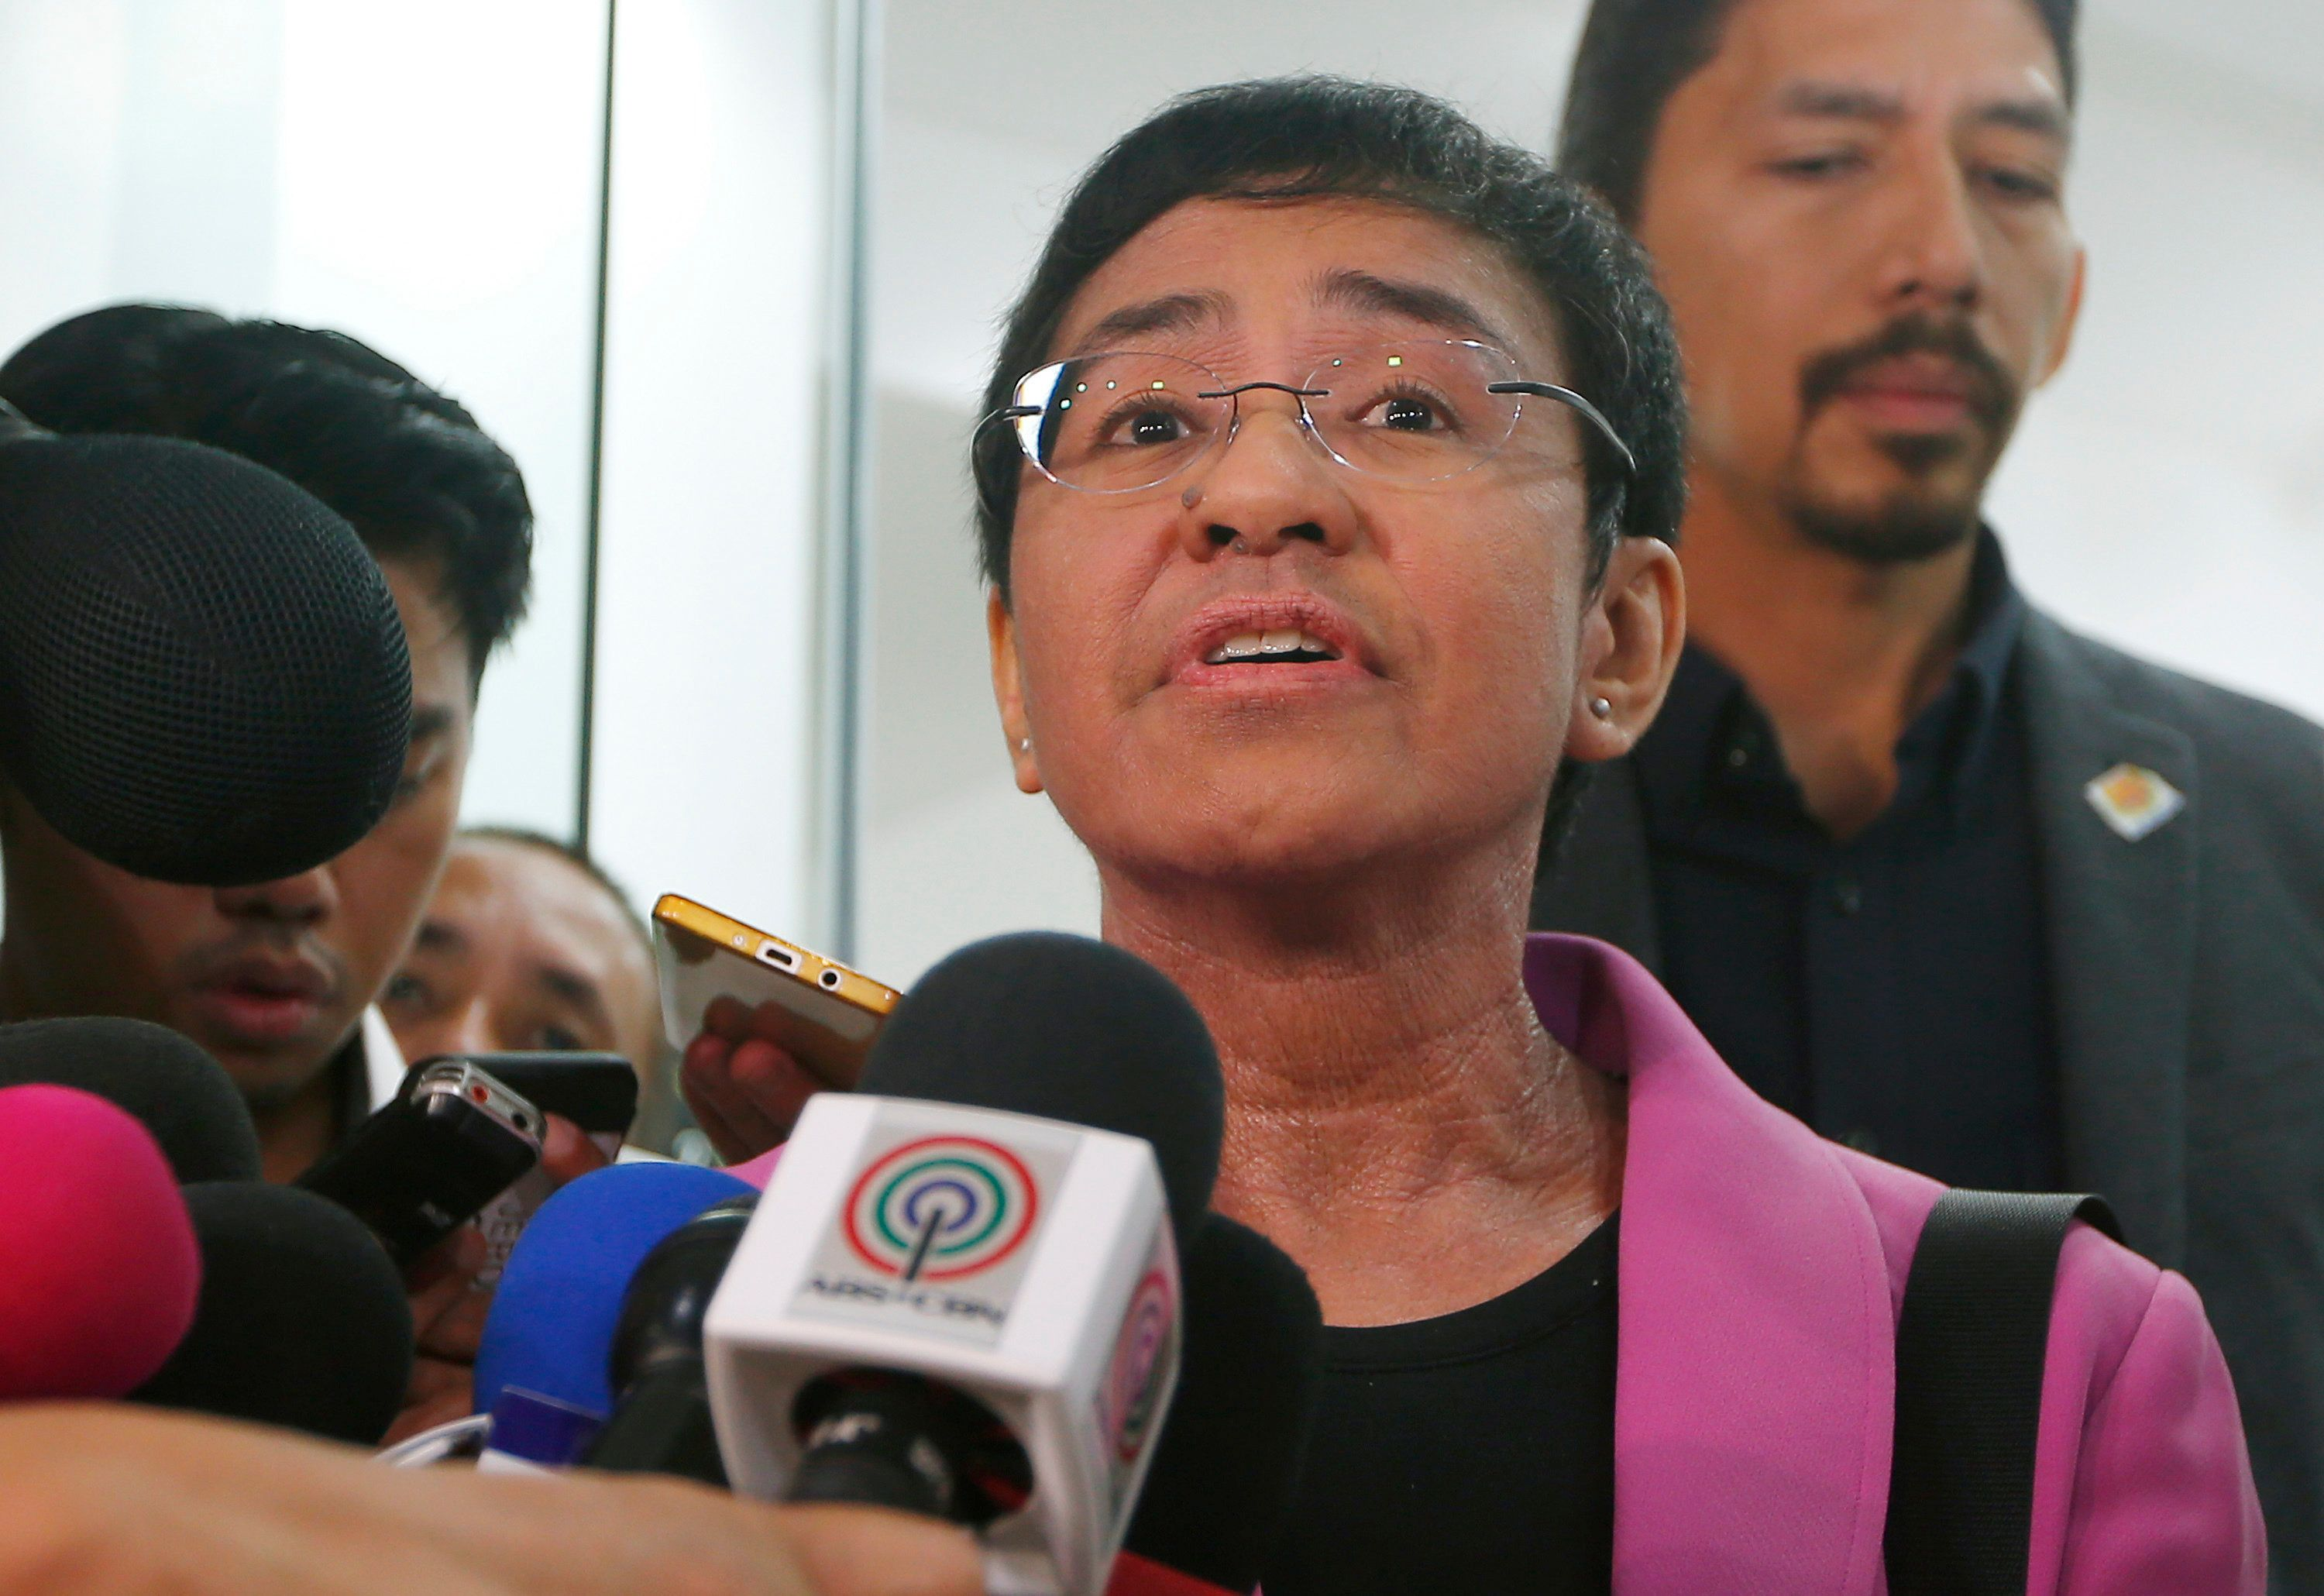 Maria Ressa, CEO of the online news agency Rappler, talks to the media after attending the summons by the National Bureau of Investigation on the cyber libel complaint filed against Rappler five years ago Monday, Jan. 22, 2018 in Manila, Philippines. Last week, the Philippine securities commission revoked the registration of Rappler, known for its critical reporting on Philippine President Rodrigo Duterte, a move media watchdogs said is an act to muzzle the free press. (AP Photo/Bullit Marquez)